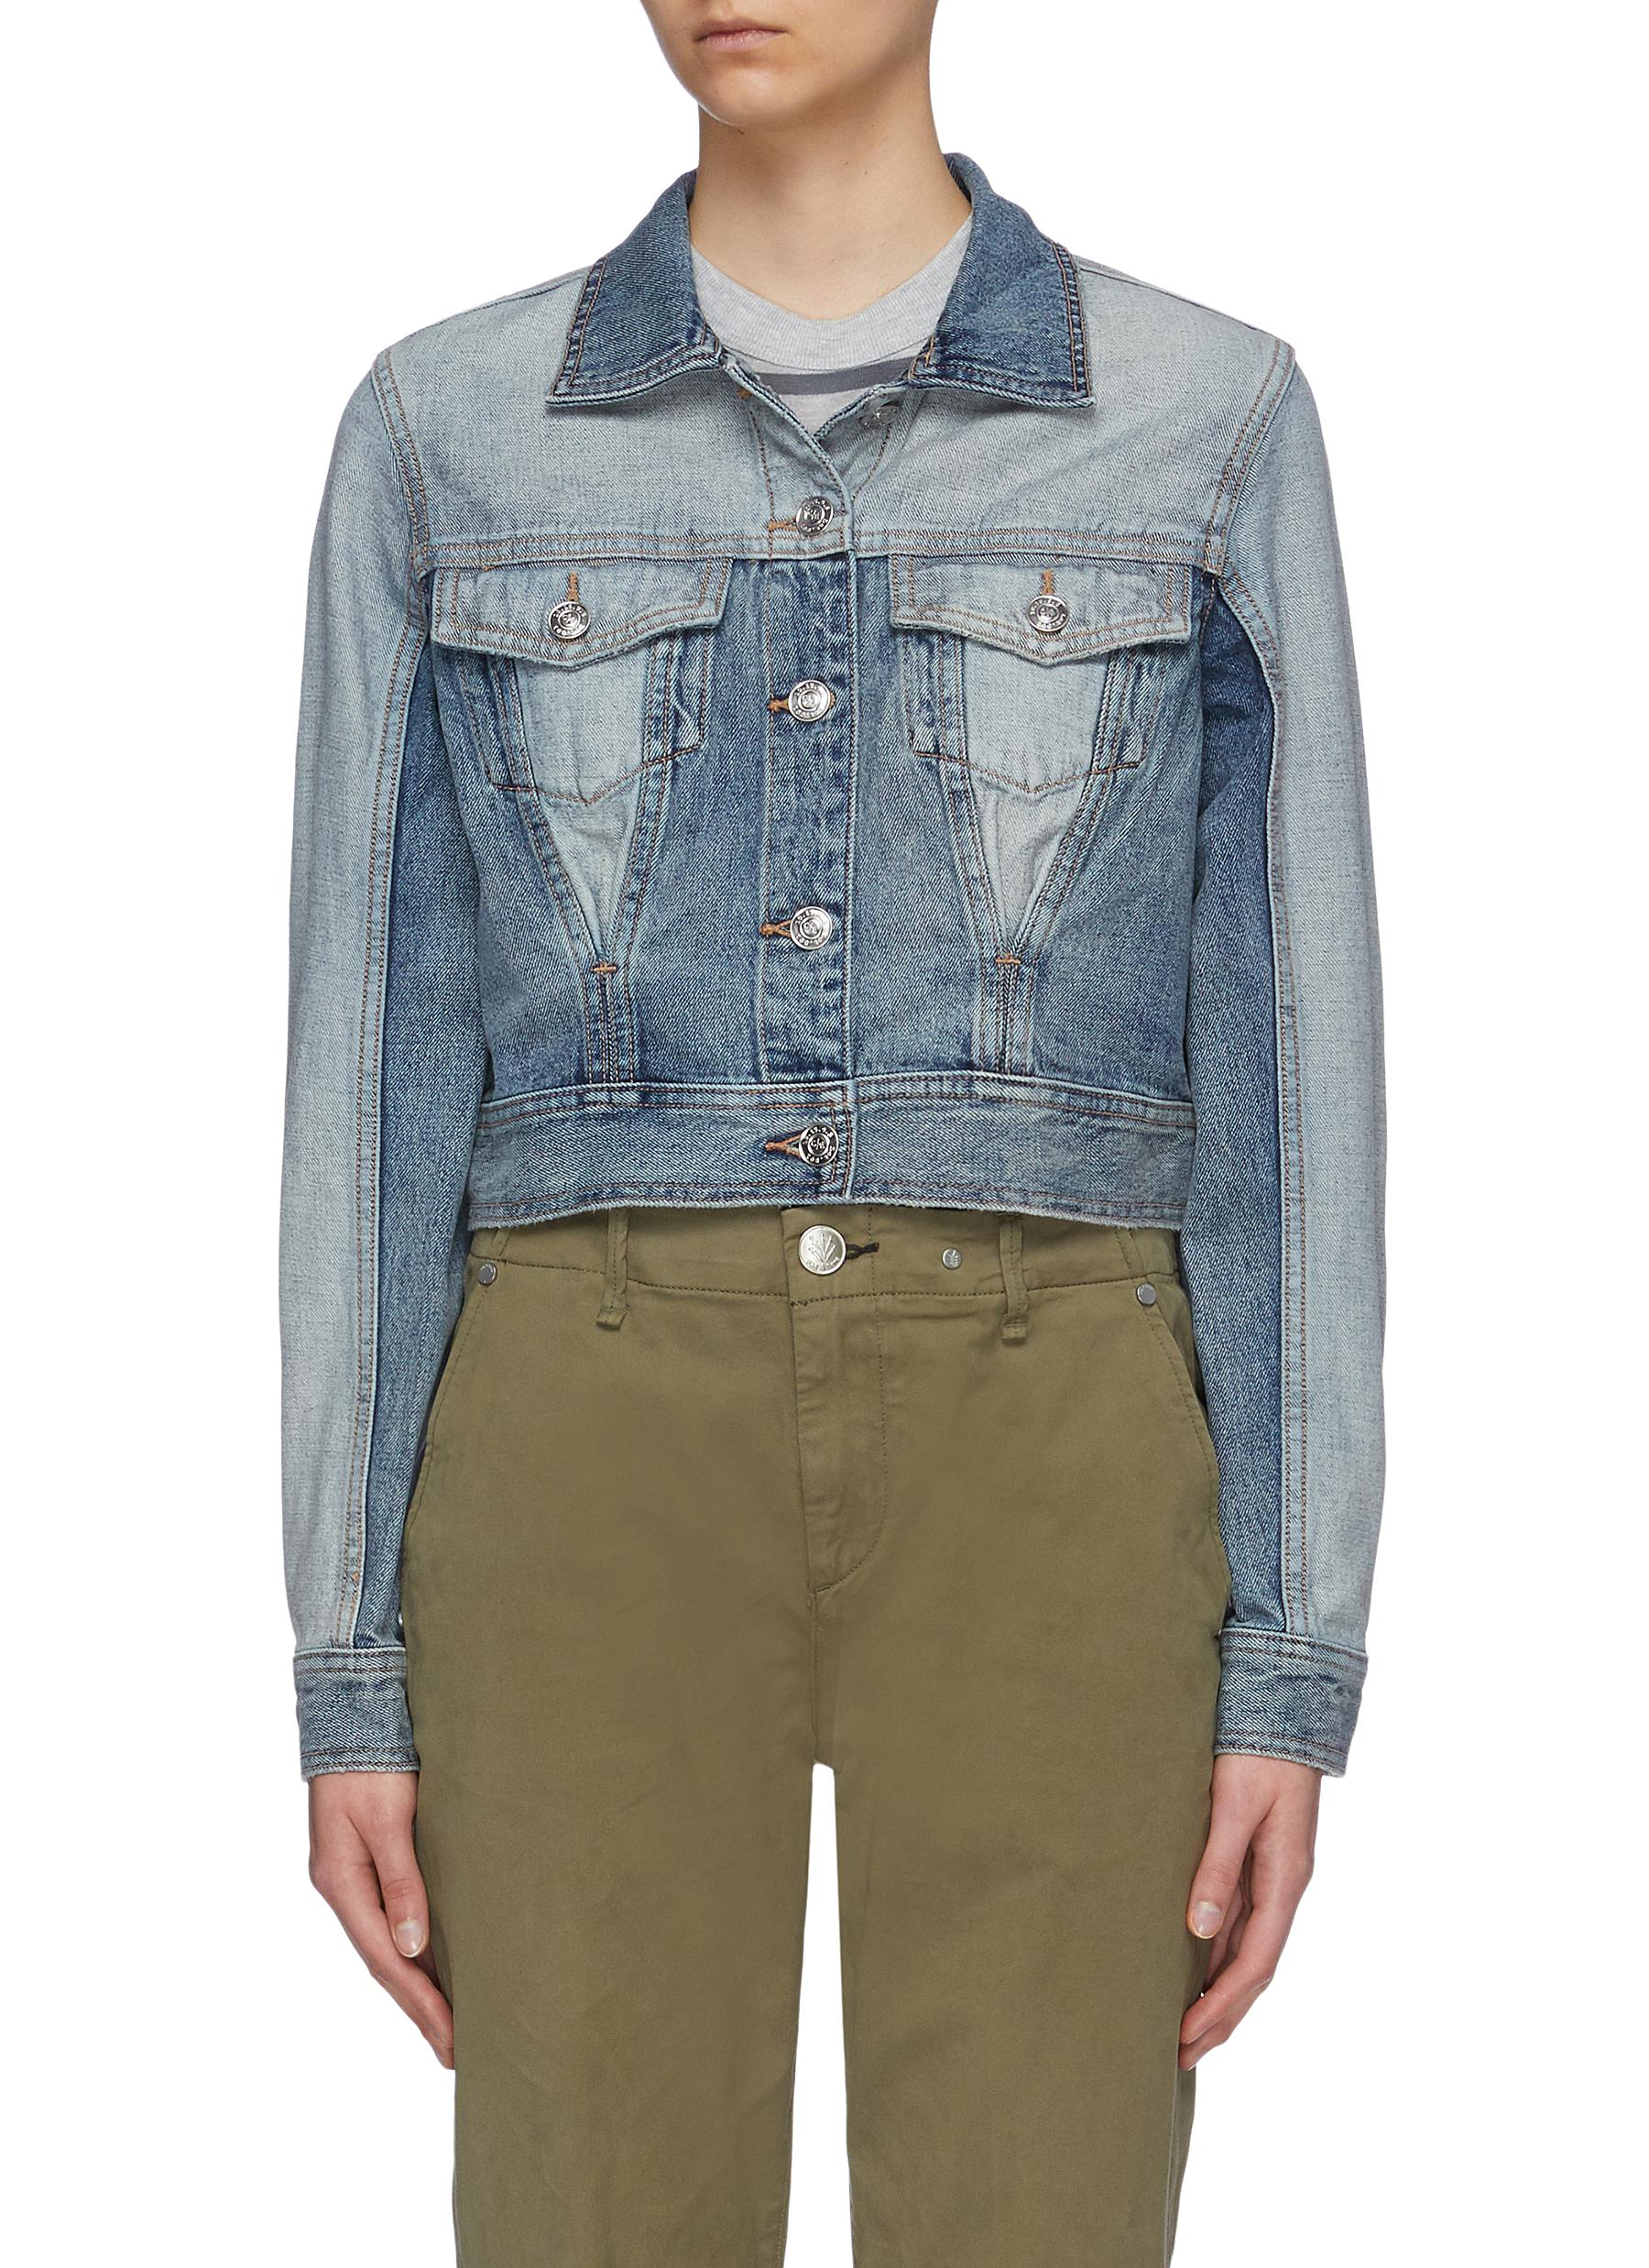 The Reversed patchwork corset cropped denim jacket by Current/Elliott